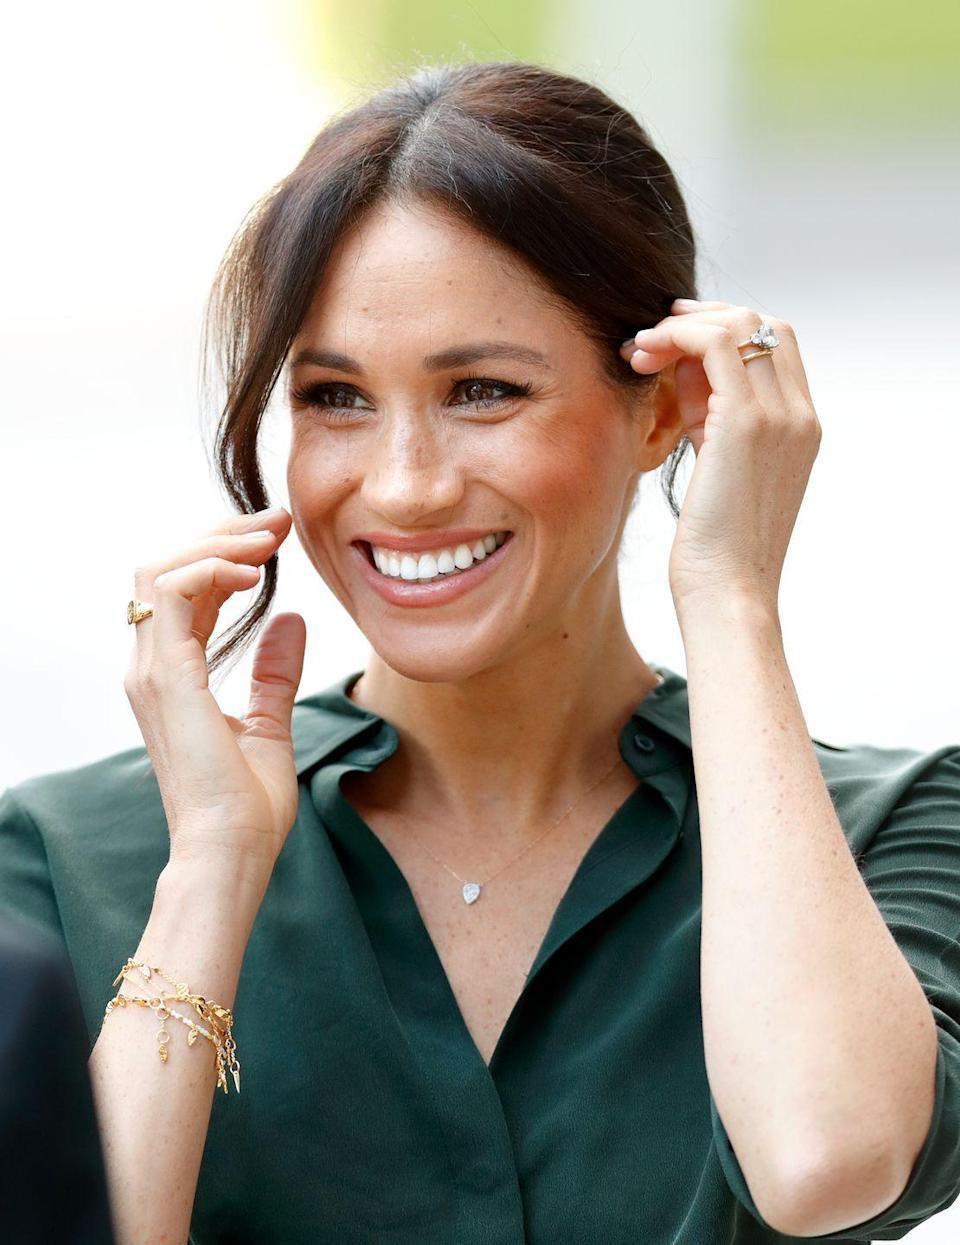 <p>Meghan's wedding band is also gold in keeping with royal tradition. She sported gold charm bracelets, a gold ring, and a matching necklace to an appearance at the University of Chichester in May 2018. <br></p>